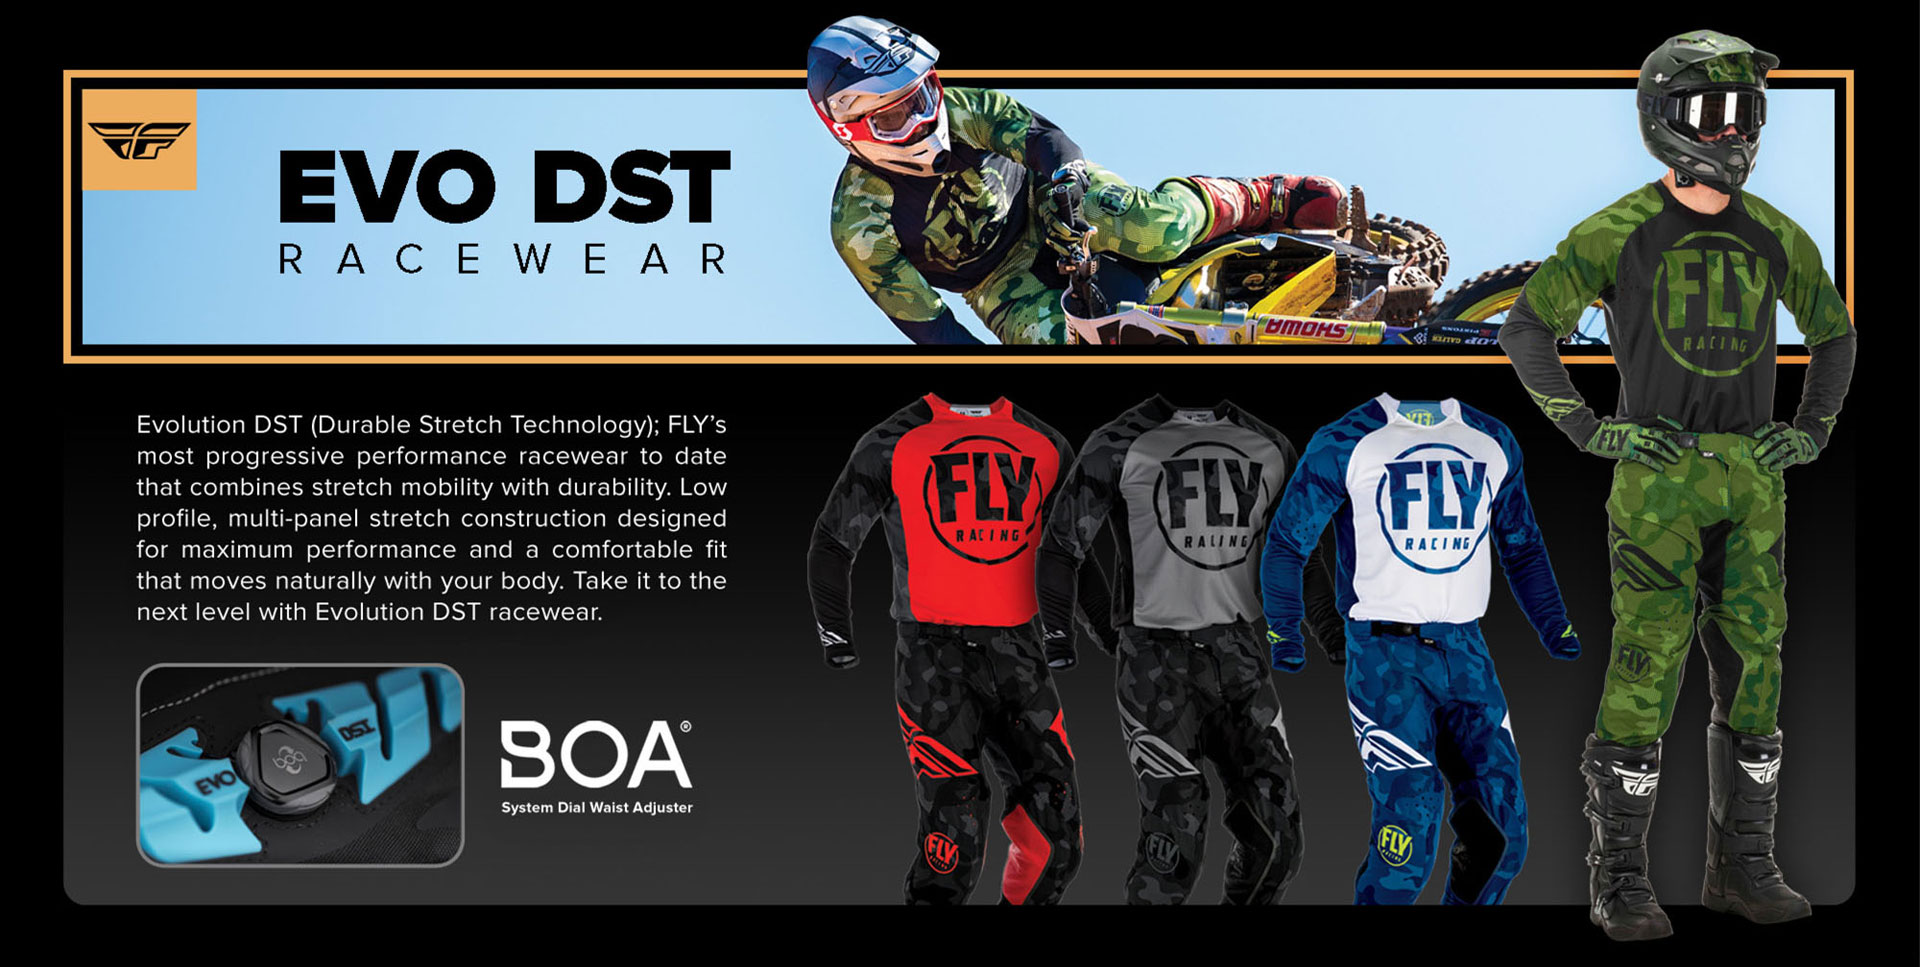 FLY Racing Collection Evolution DST Gear